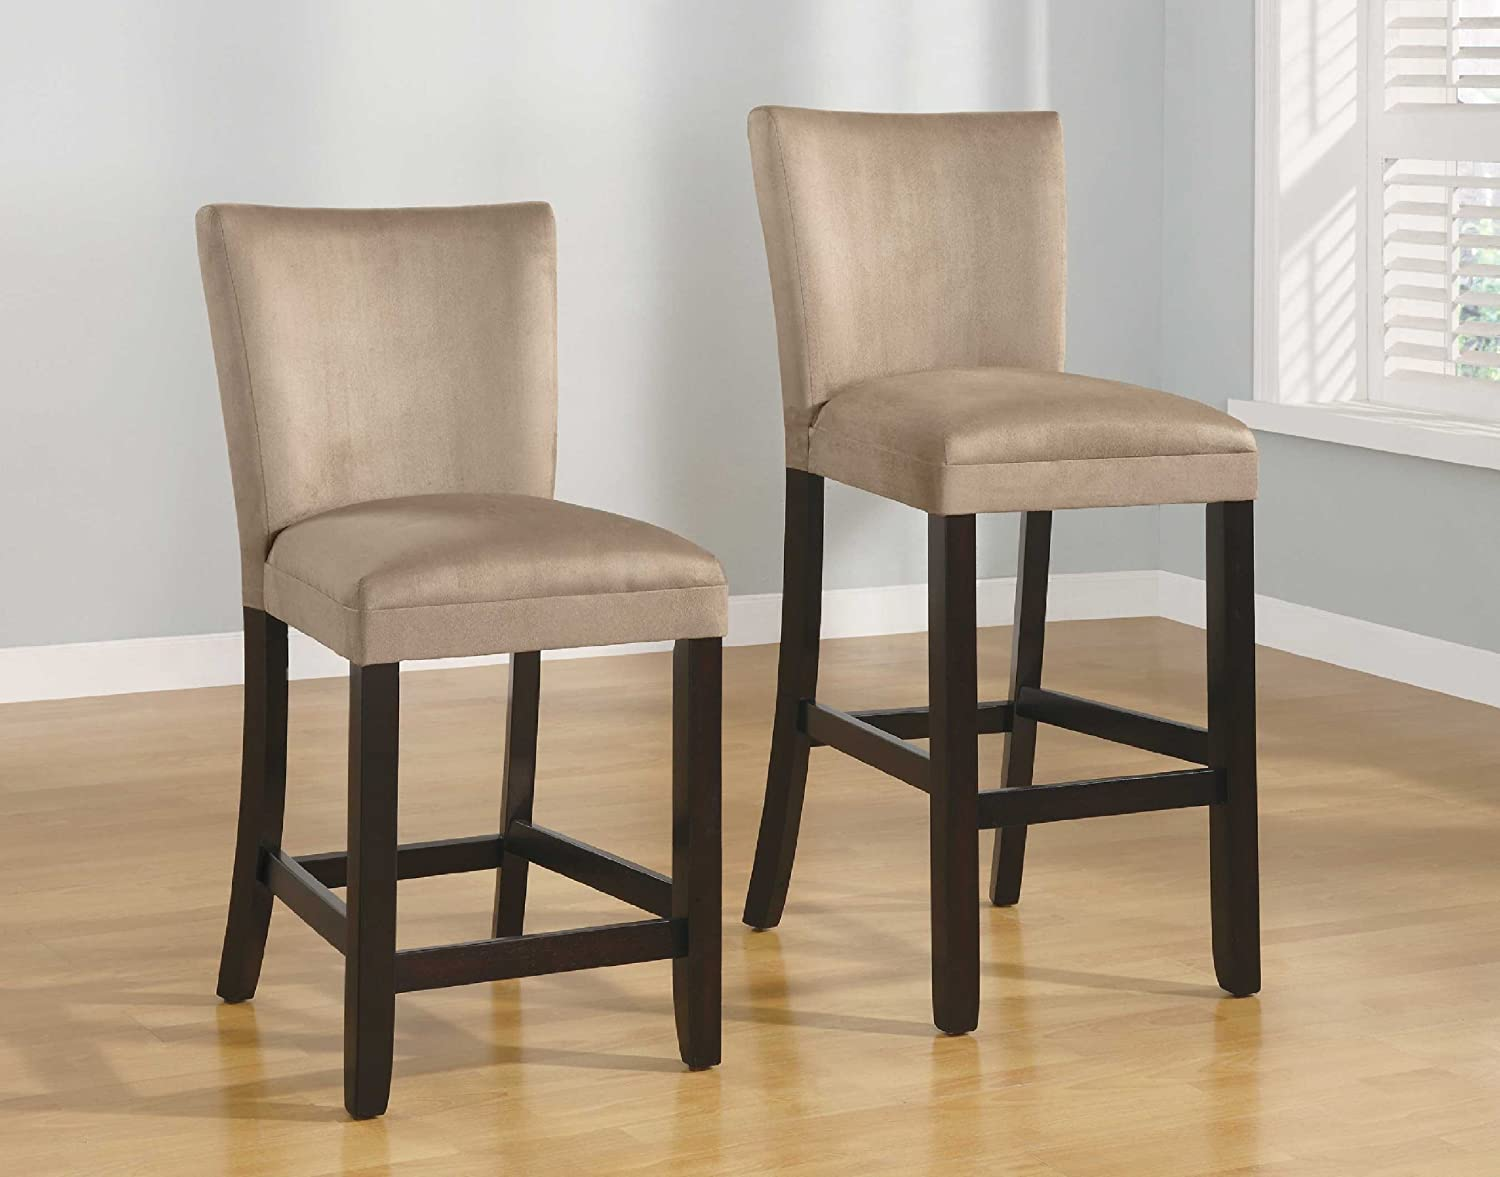 Cheap Counter Chairs Cheap Bar Stools With Back 2013